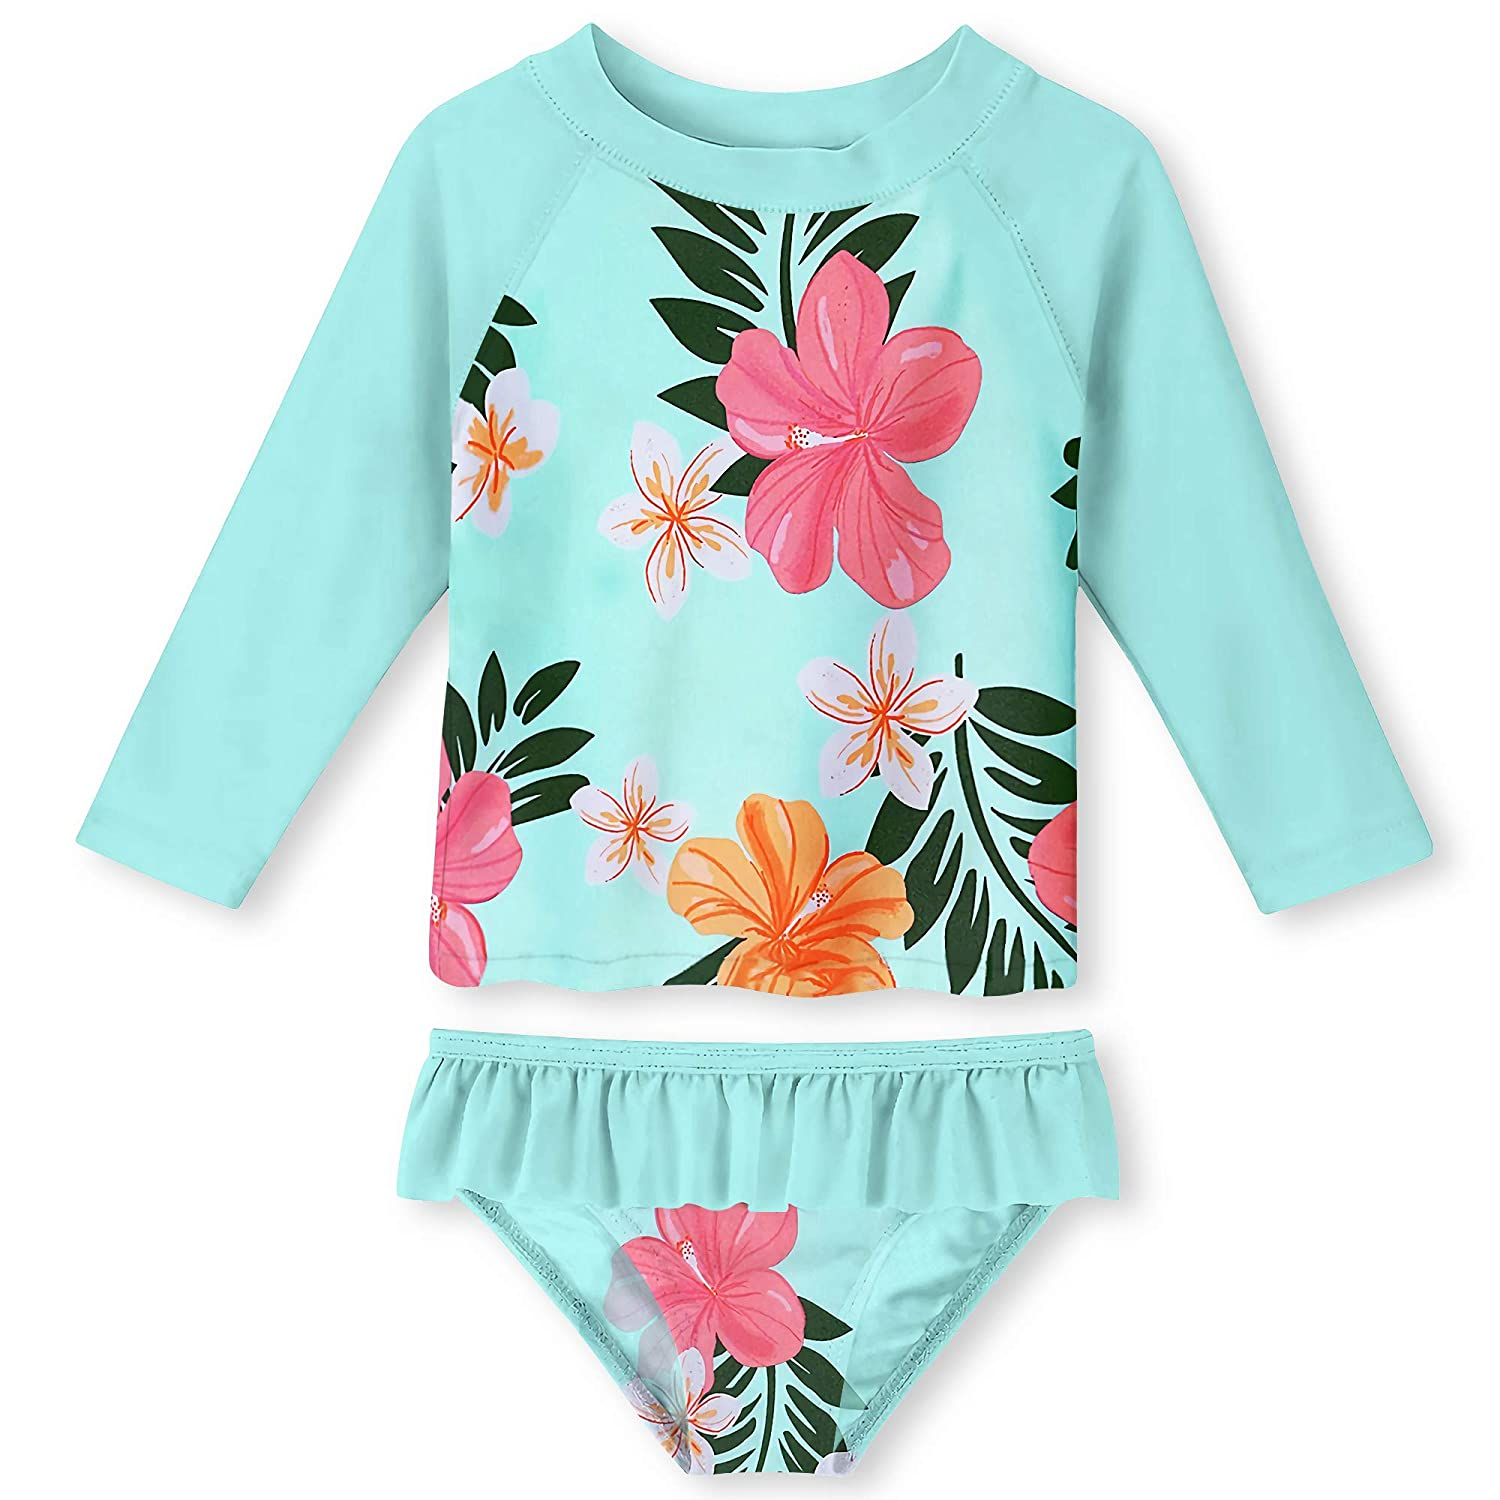 UNIFACO Toddler Girls Swimsuit Rashguard Set Summer Beach Breathable Tankini with UPF 50 Sun Protection 2-6T